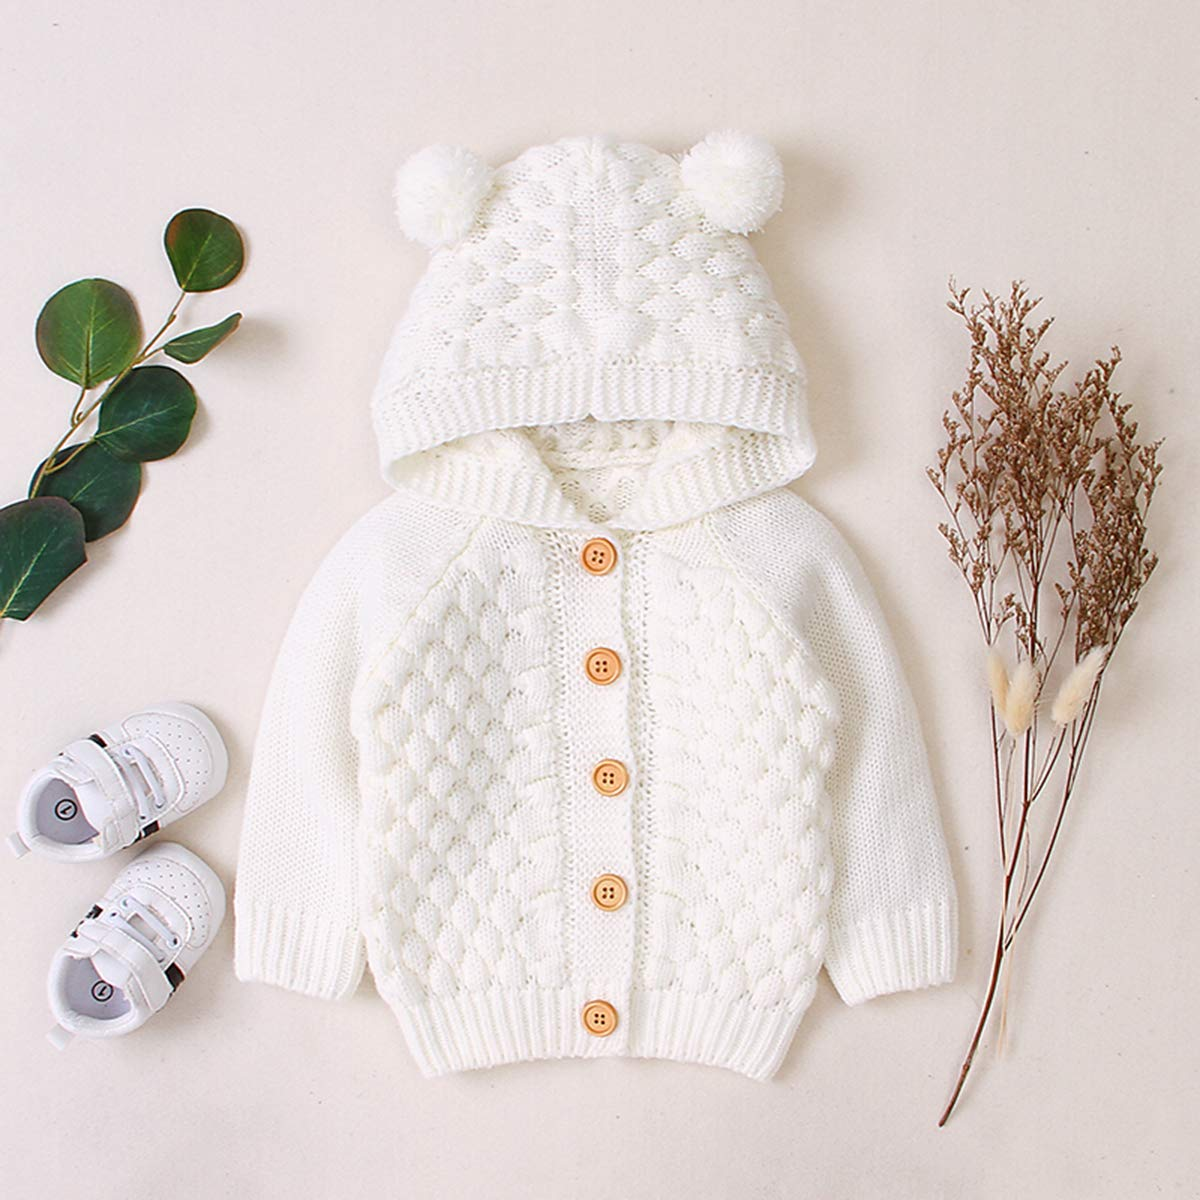 mtxtechnology Newborn Baby Fall Winter Knitted Solid Color Coat Hooded Sweater Jacket Outwear